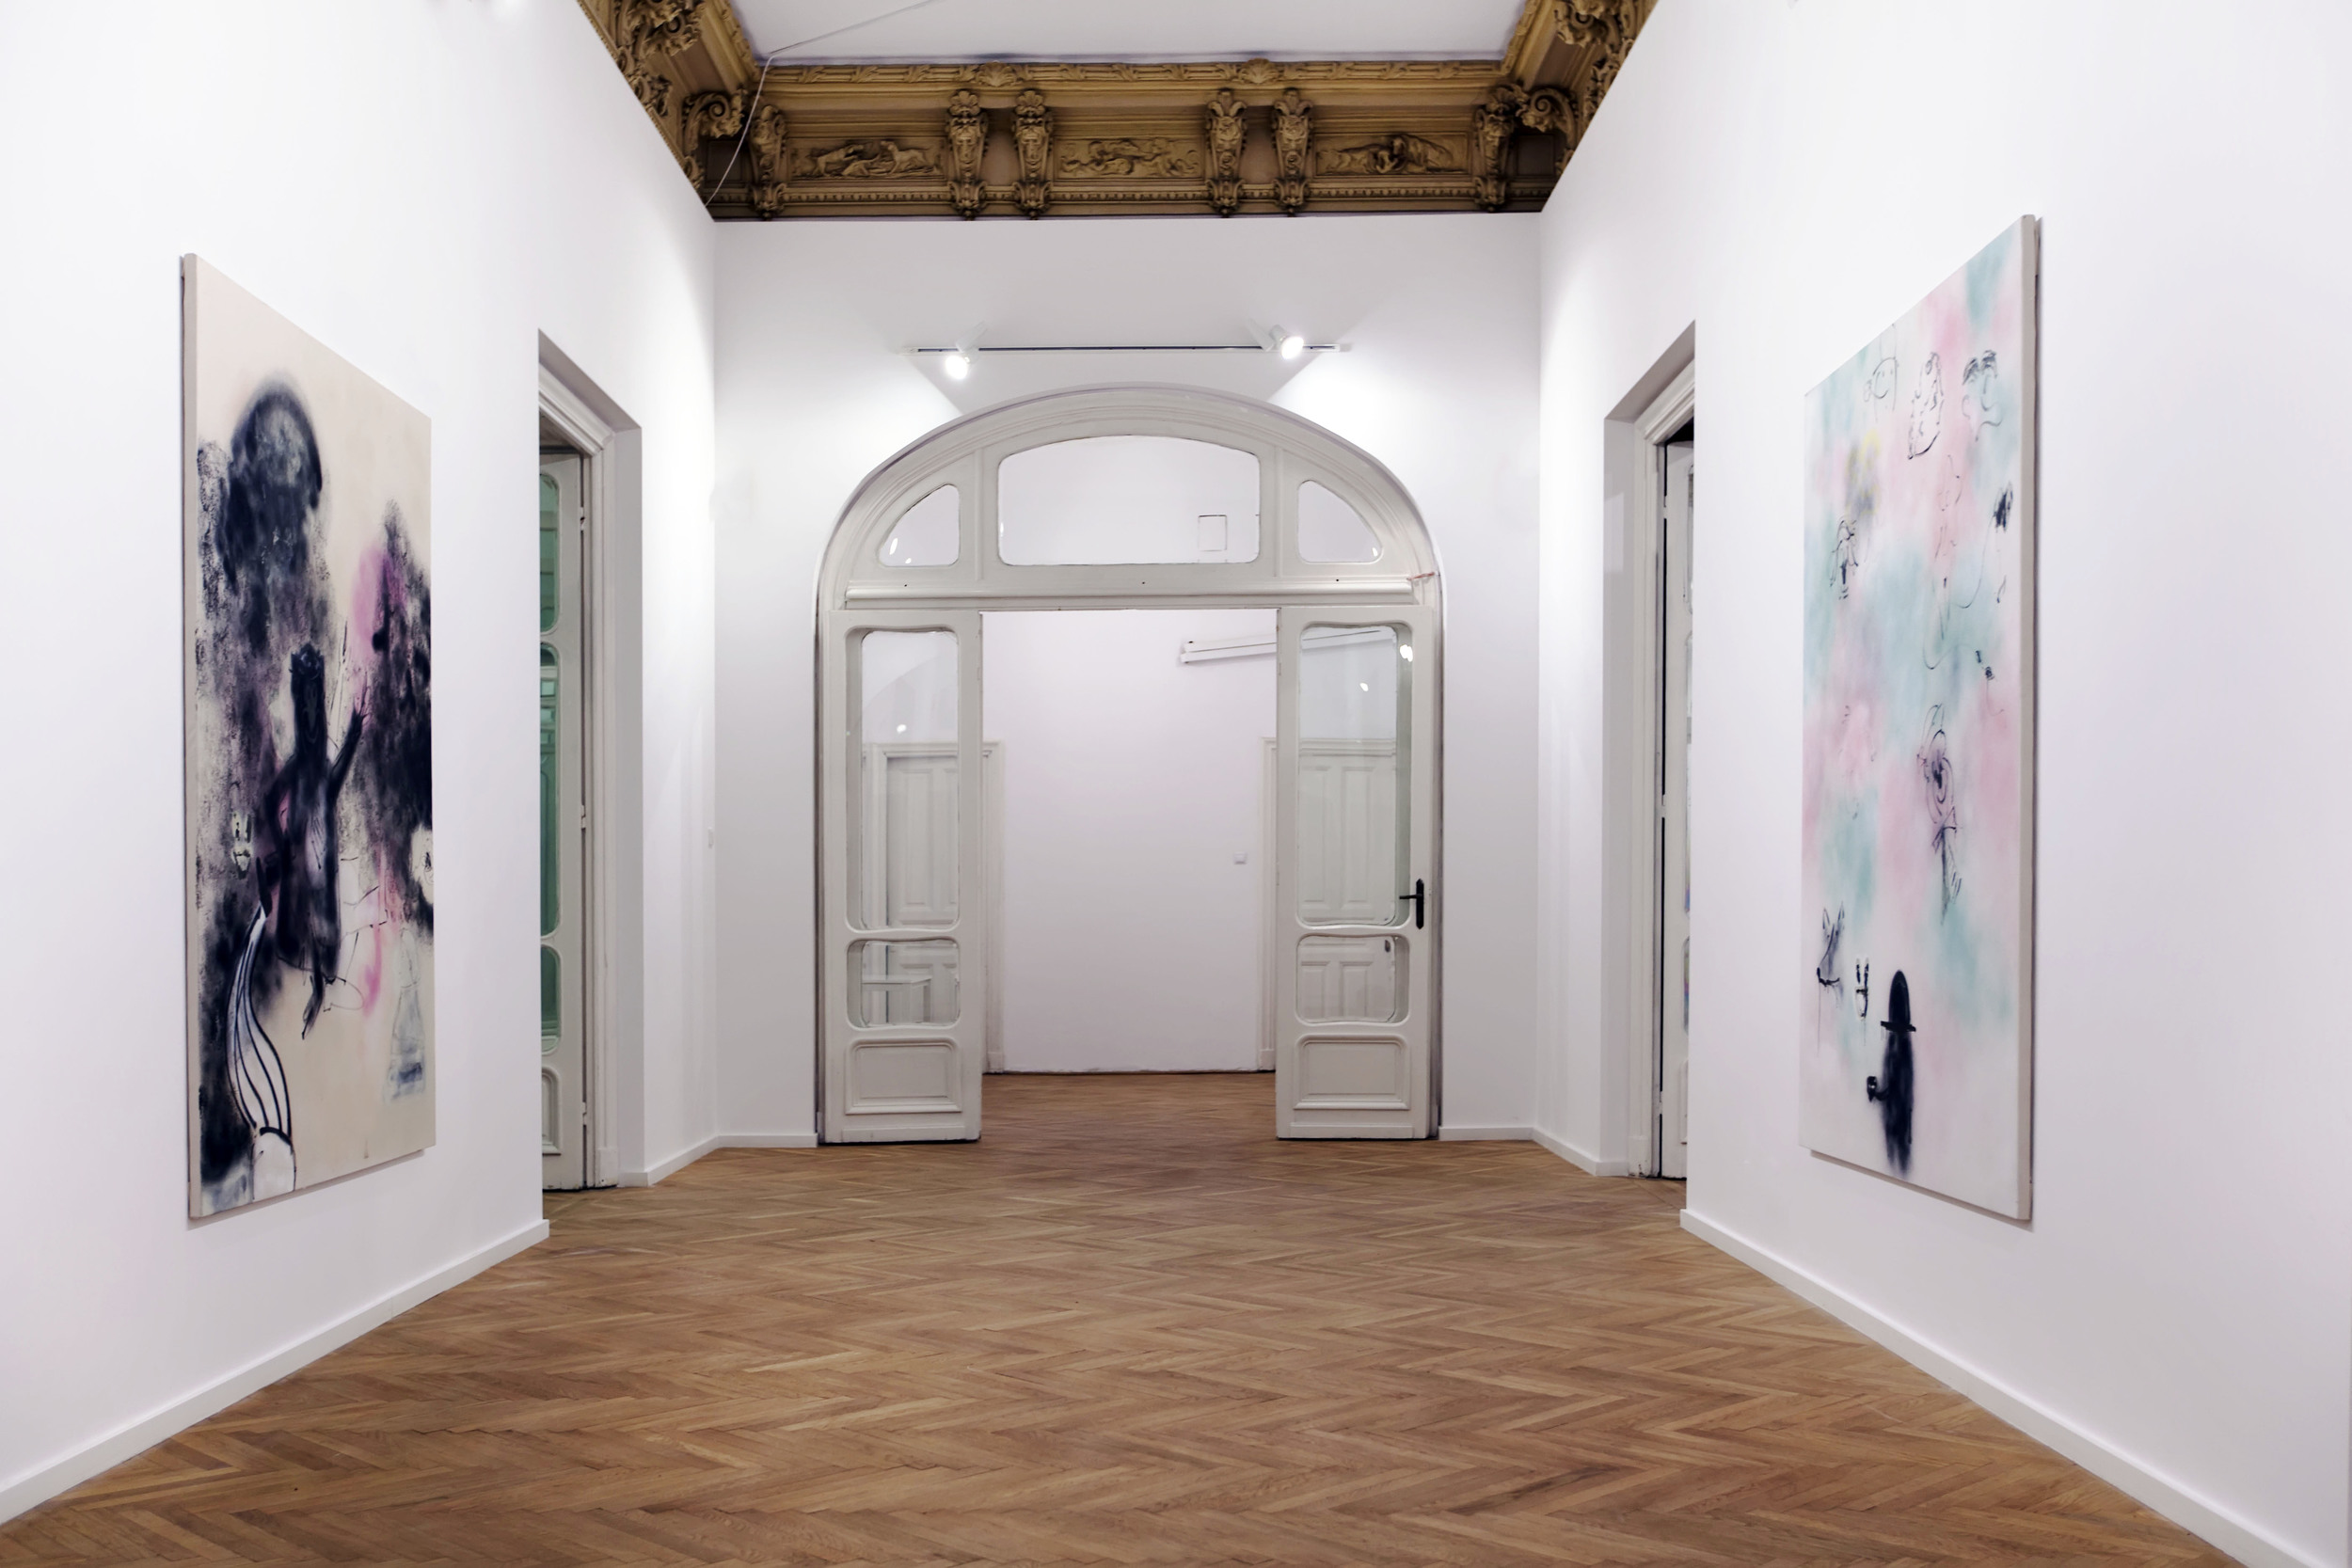 Robin von Einsiedel, Chinatown, Nicodim Gallery, 15 January -19 February 2015